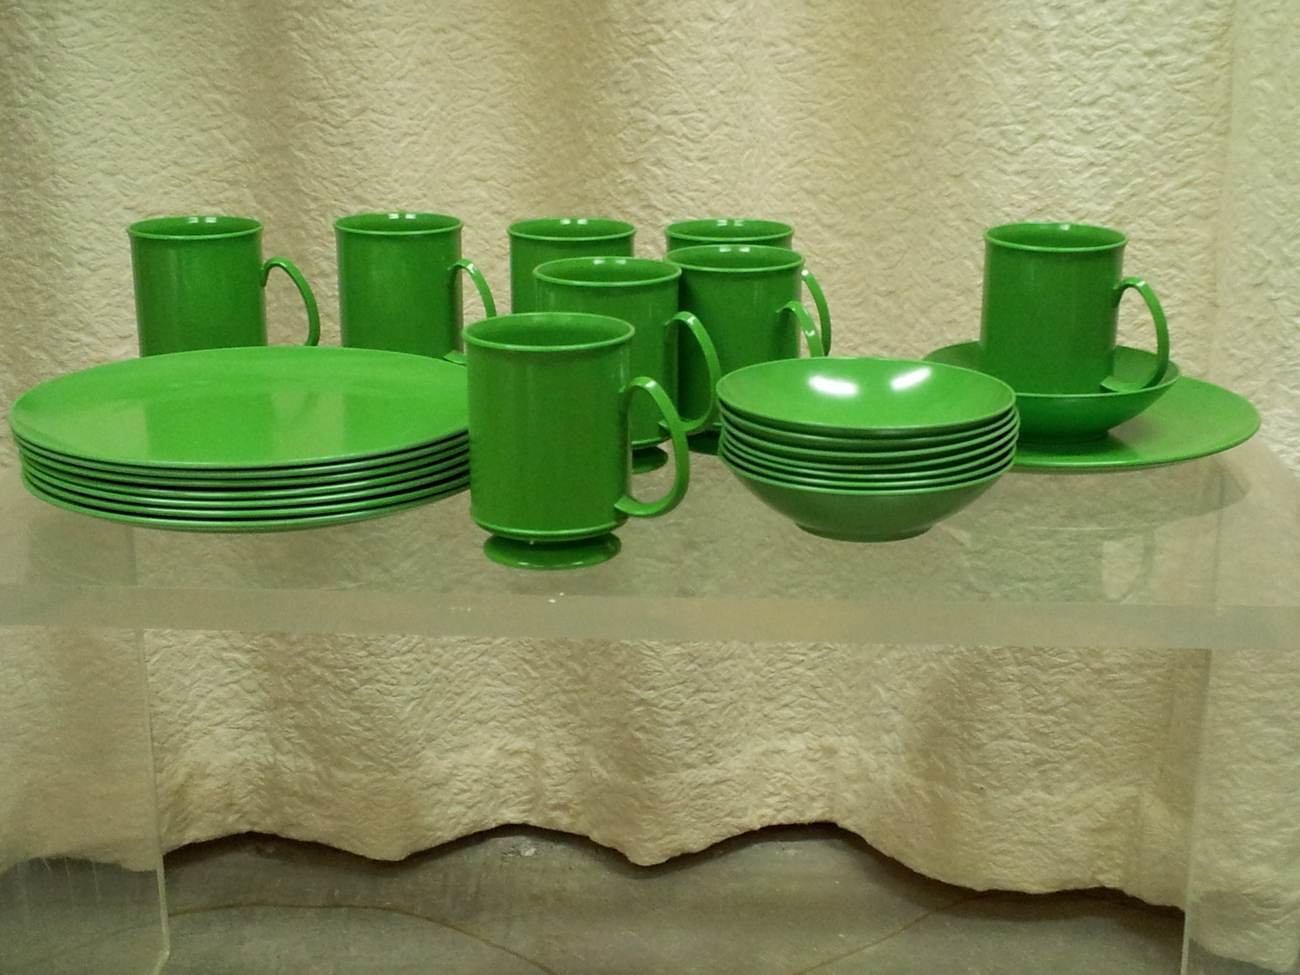 Happy Green Plastic Picnic Plates (and Cups and Bowls)